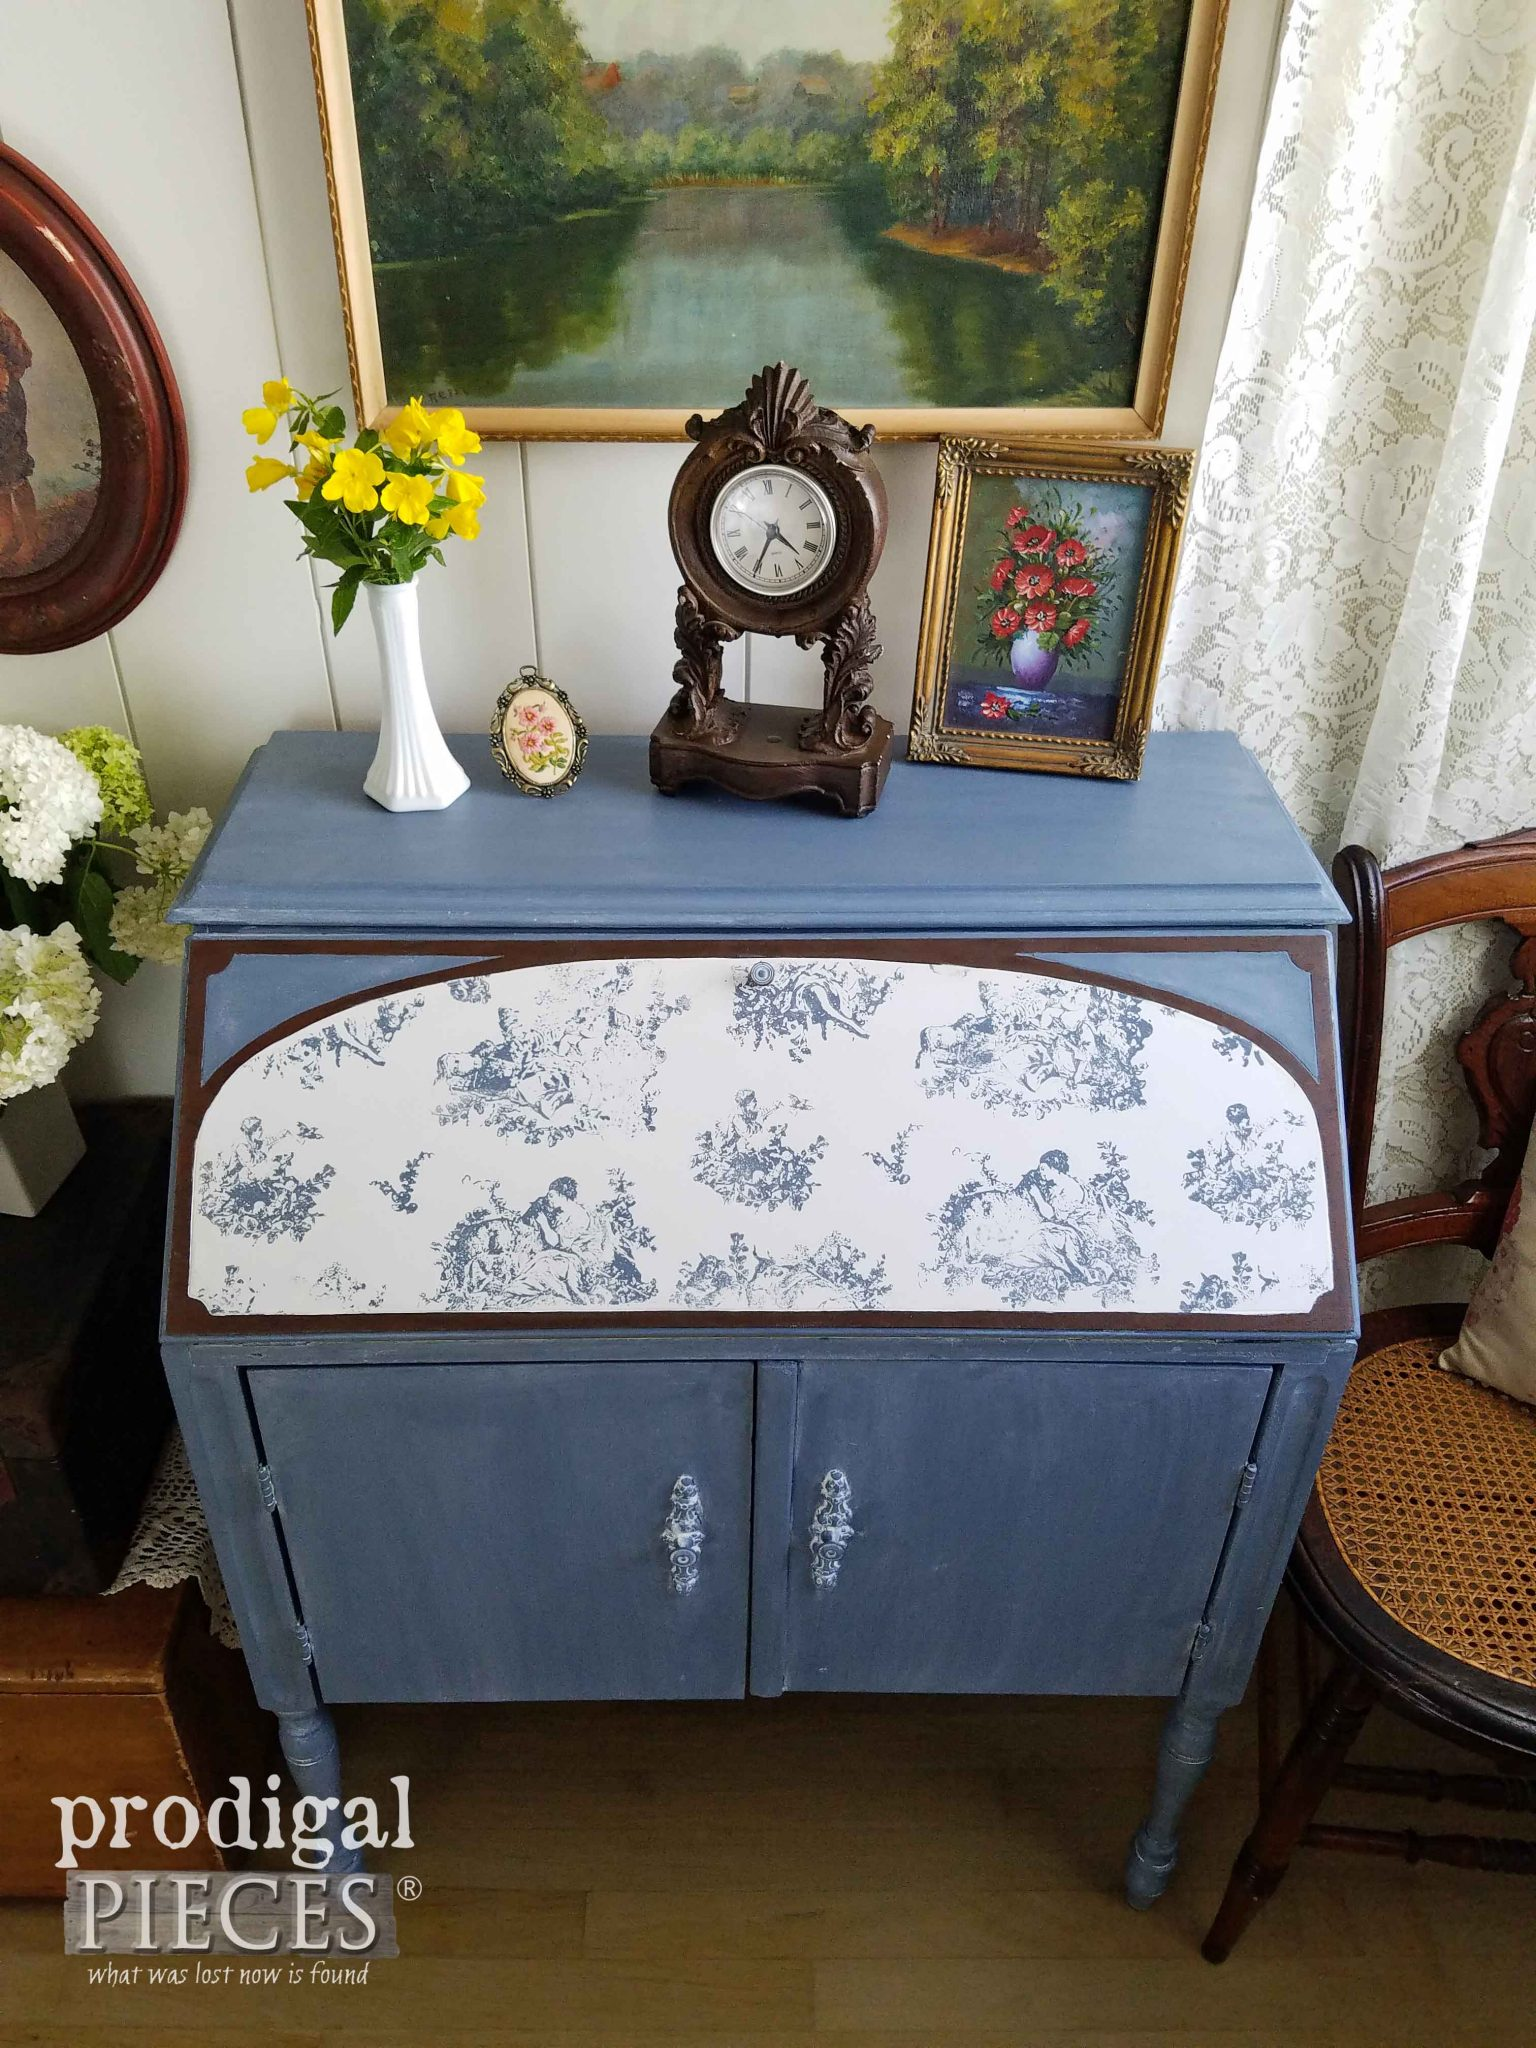 Toile Stamped Desk Created using Iron Orchid Designs Products by Prodigal Pieces | prodigalpieces.com